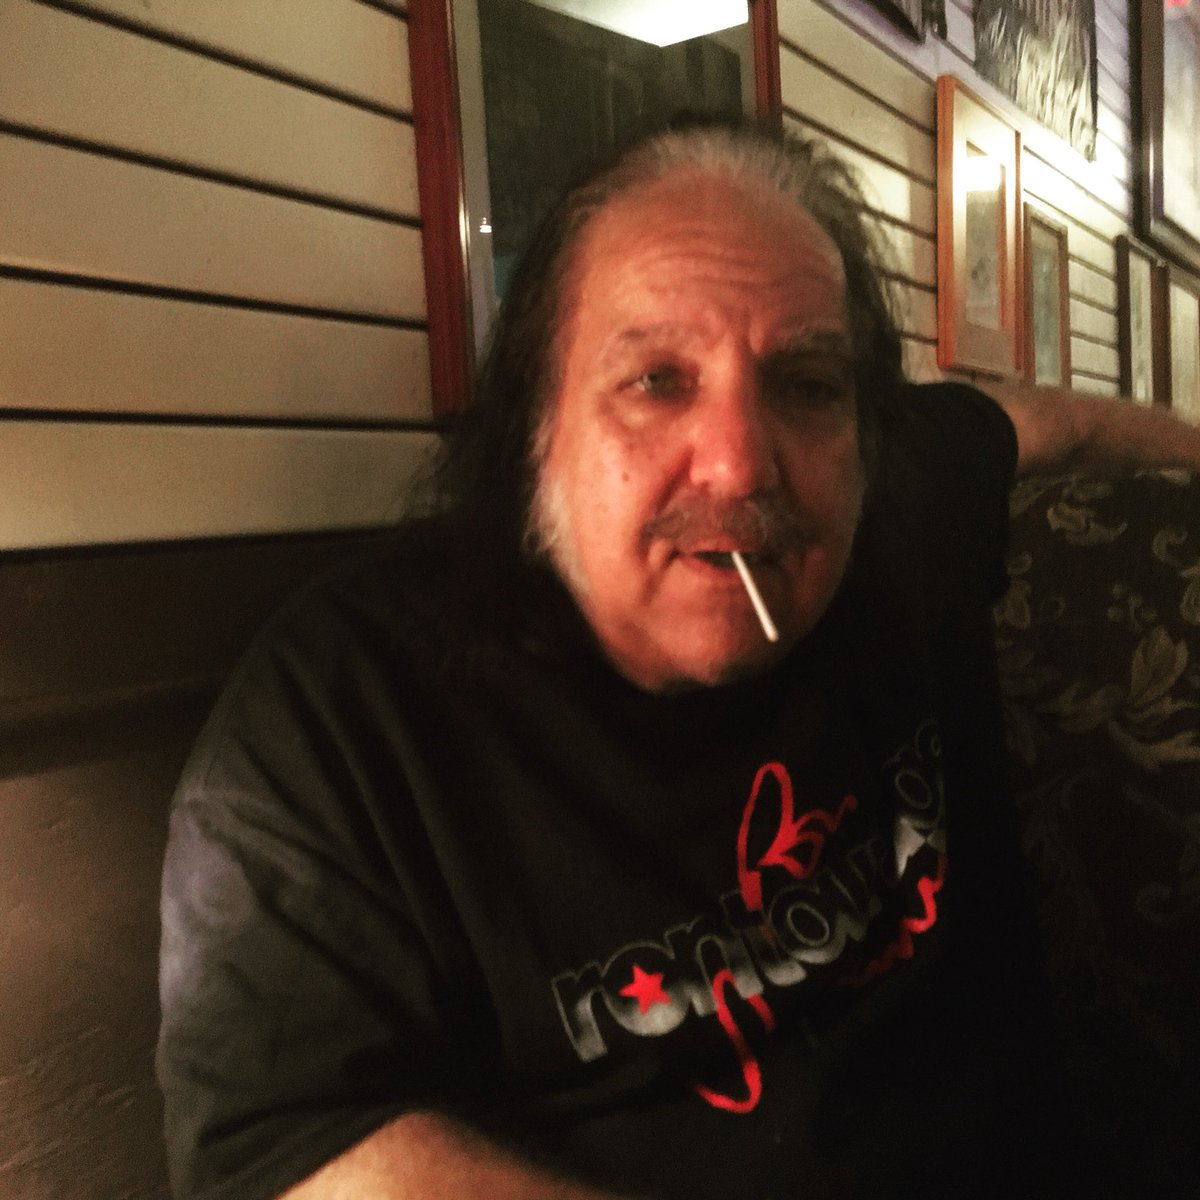 Ron Jeremy On Twitter Hey Rontourage Check Out My Shirts At Smyrx Shirts Https T Co Wjmqjowmga